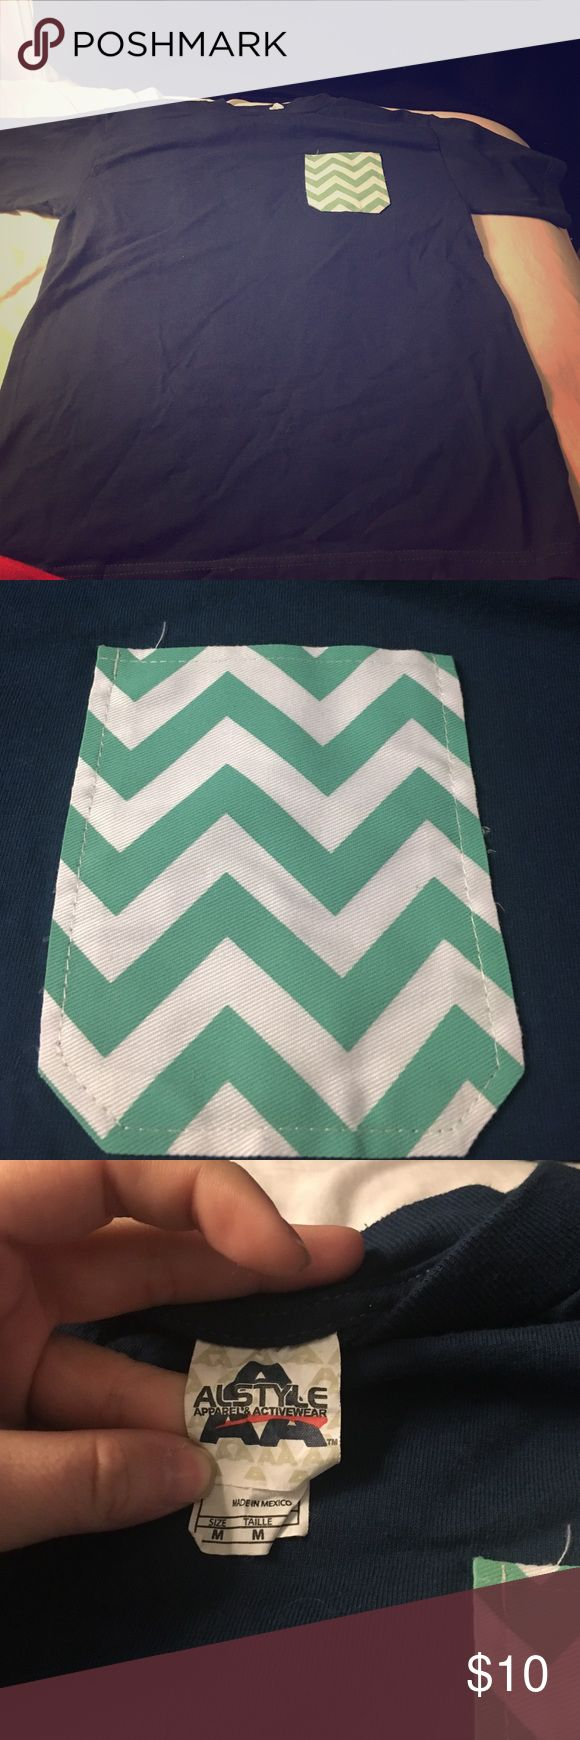 Chevron pocket tee Never worn. Short sleeve. Great for monogramming! Tops Tees - Short Sleeve